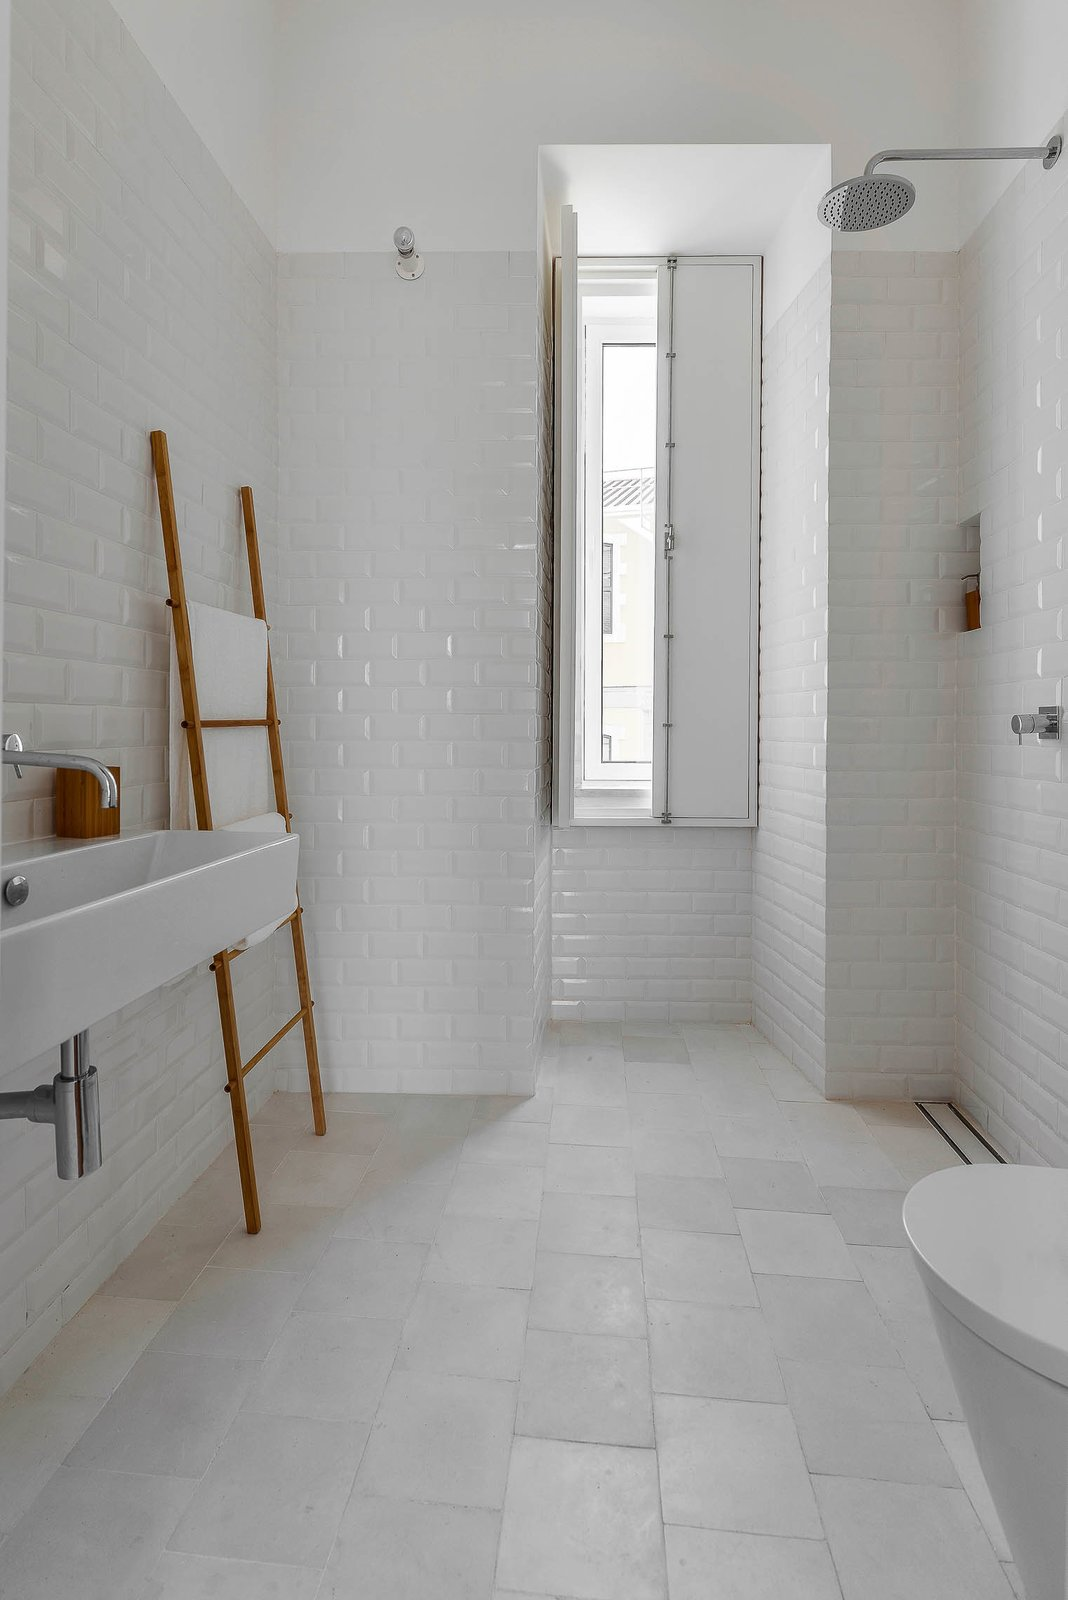 """Bath Room, Open Shower, Wall Mount Sink, and Subway Tile Wall White tiles — hydraulic ones on the floor and """"biselado"""" (meaning """"beveled"""") ones on the walls — make for a tranquil bathroom.  Best Photos from Minimal Apartment in Lisbon Divvied Up by Sliding Doors"""